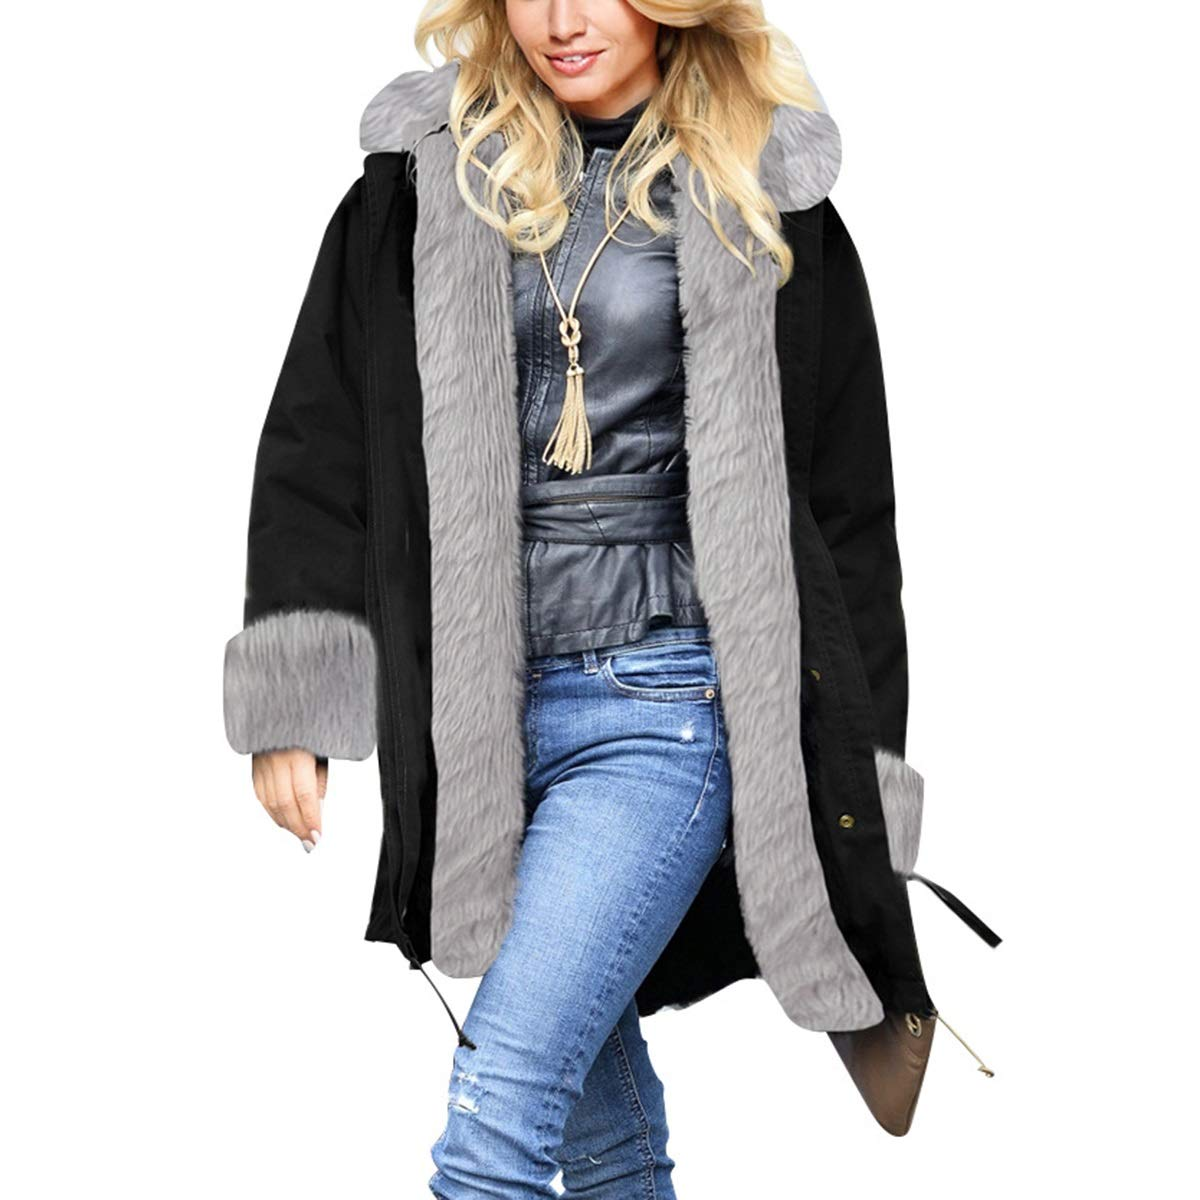 Black4 Womens Winter Warm Thicken Long Sleeve Faux Fur Collar Hooded Parka Jacket Coat